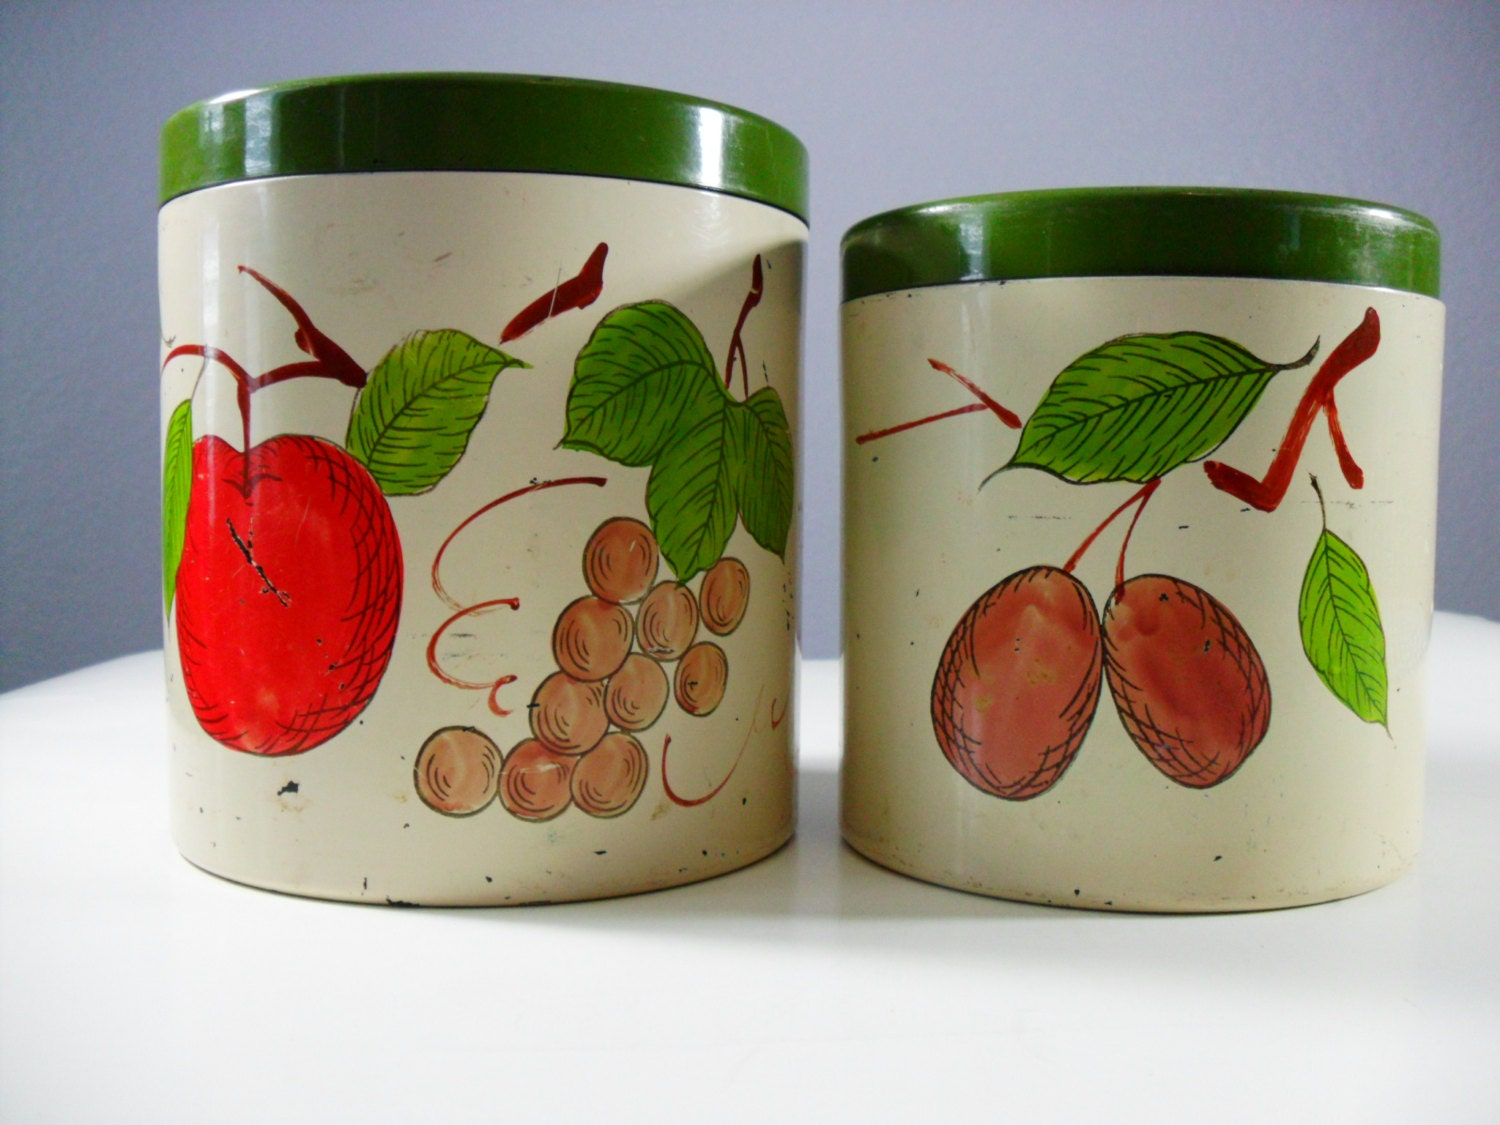 Vintage kitchen canisters rustic kitchen decor by - Green apple kitchen decor ...